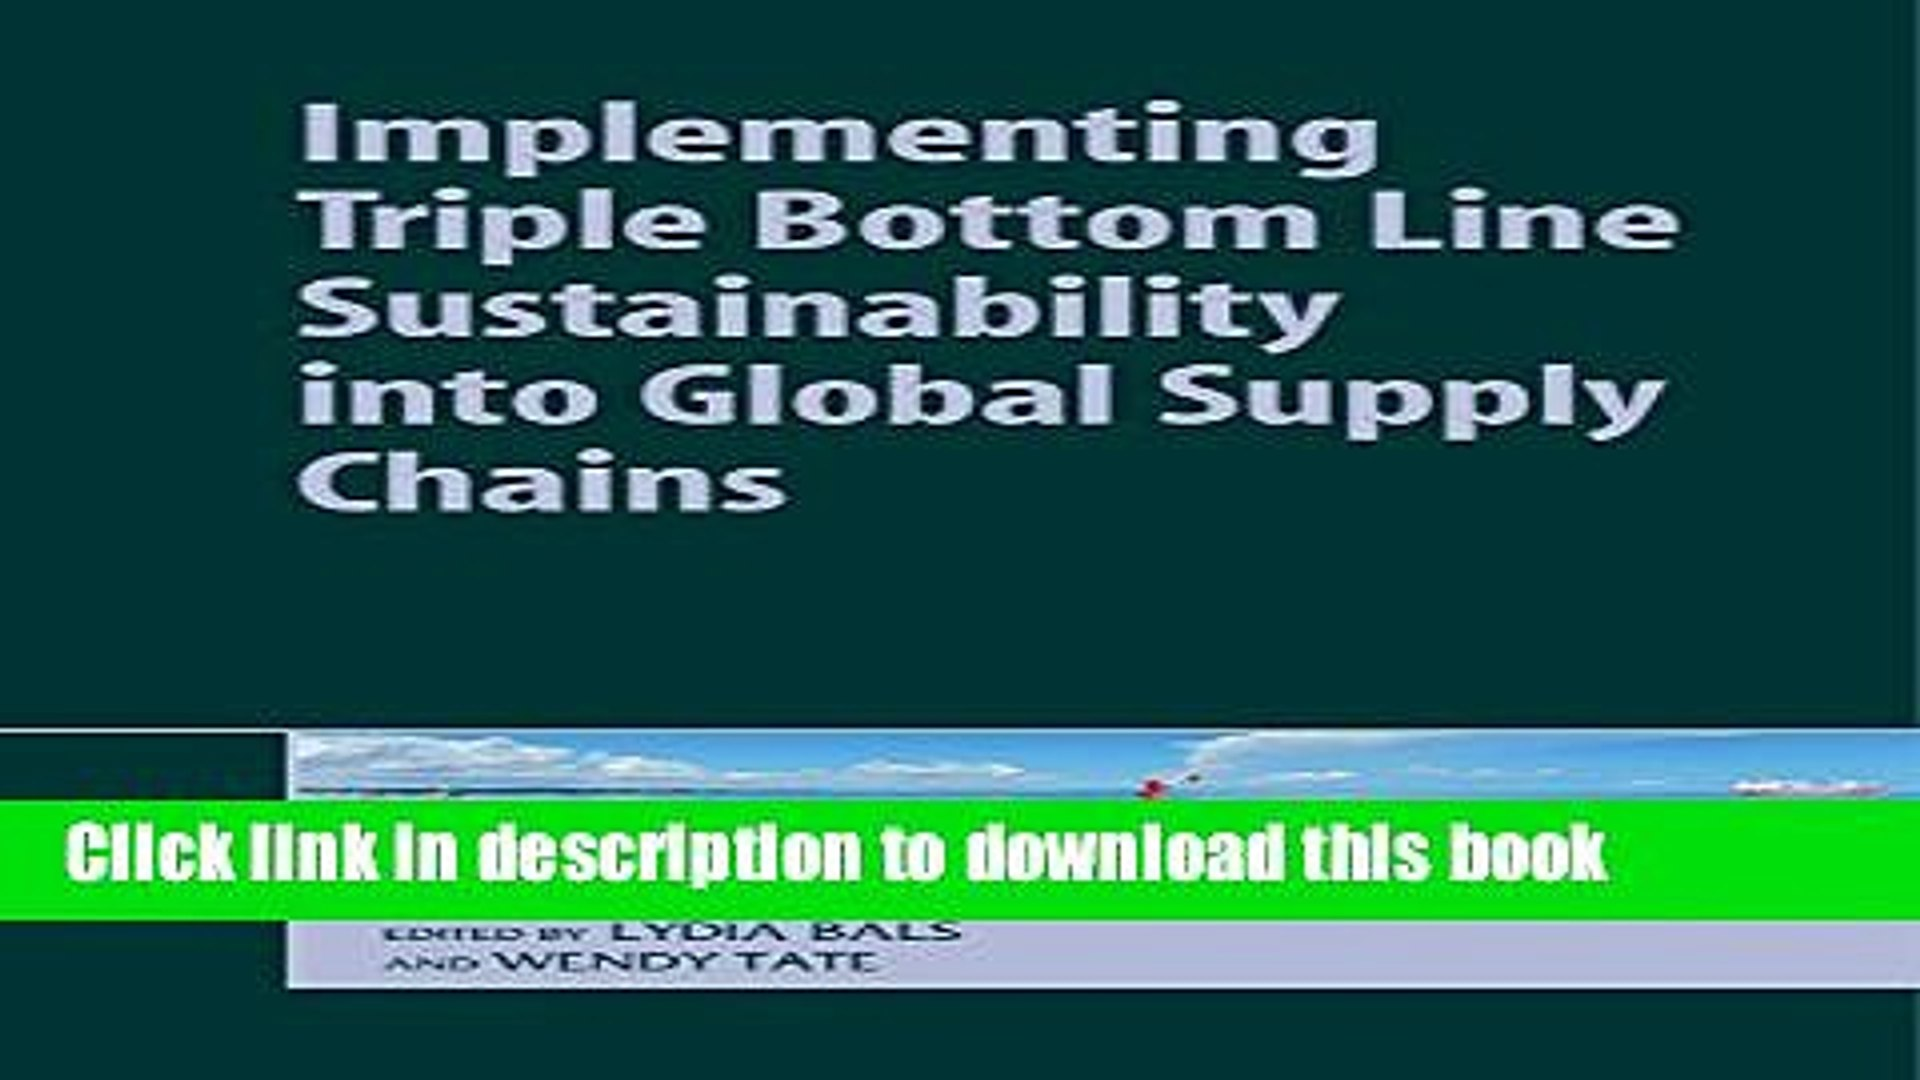 Books Implementing Triple Bottom Line Sustainability into Global Supply Chains Full Online